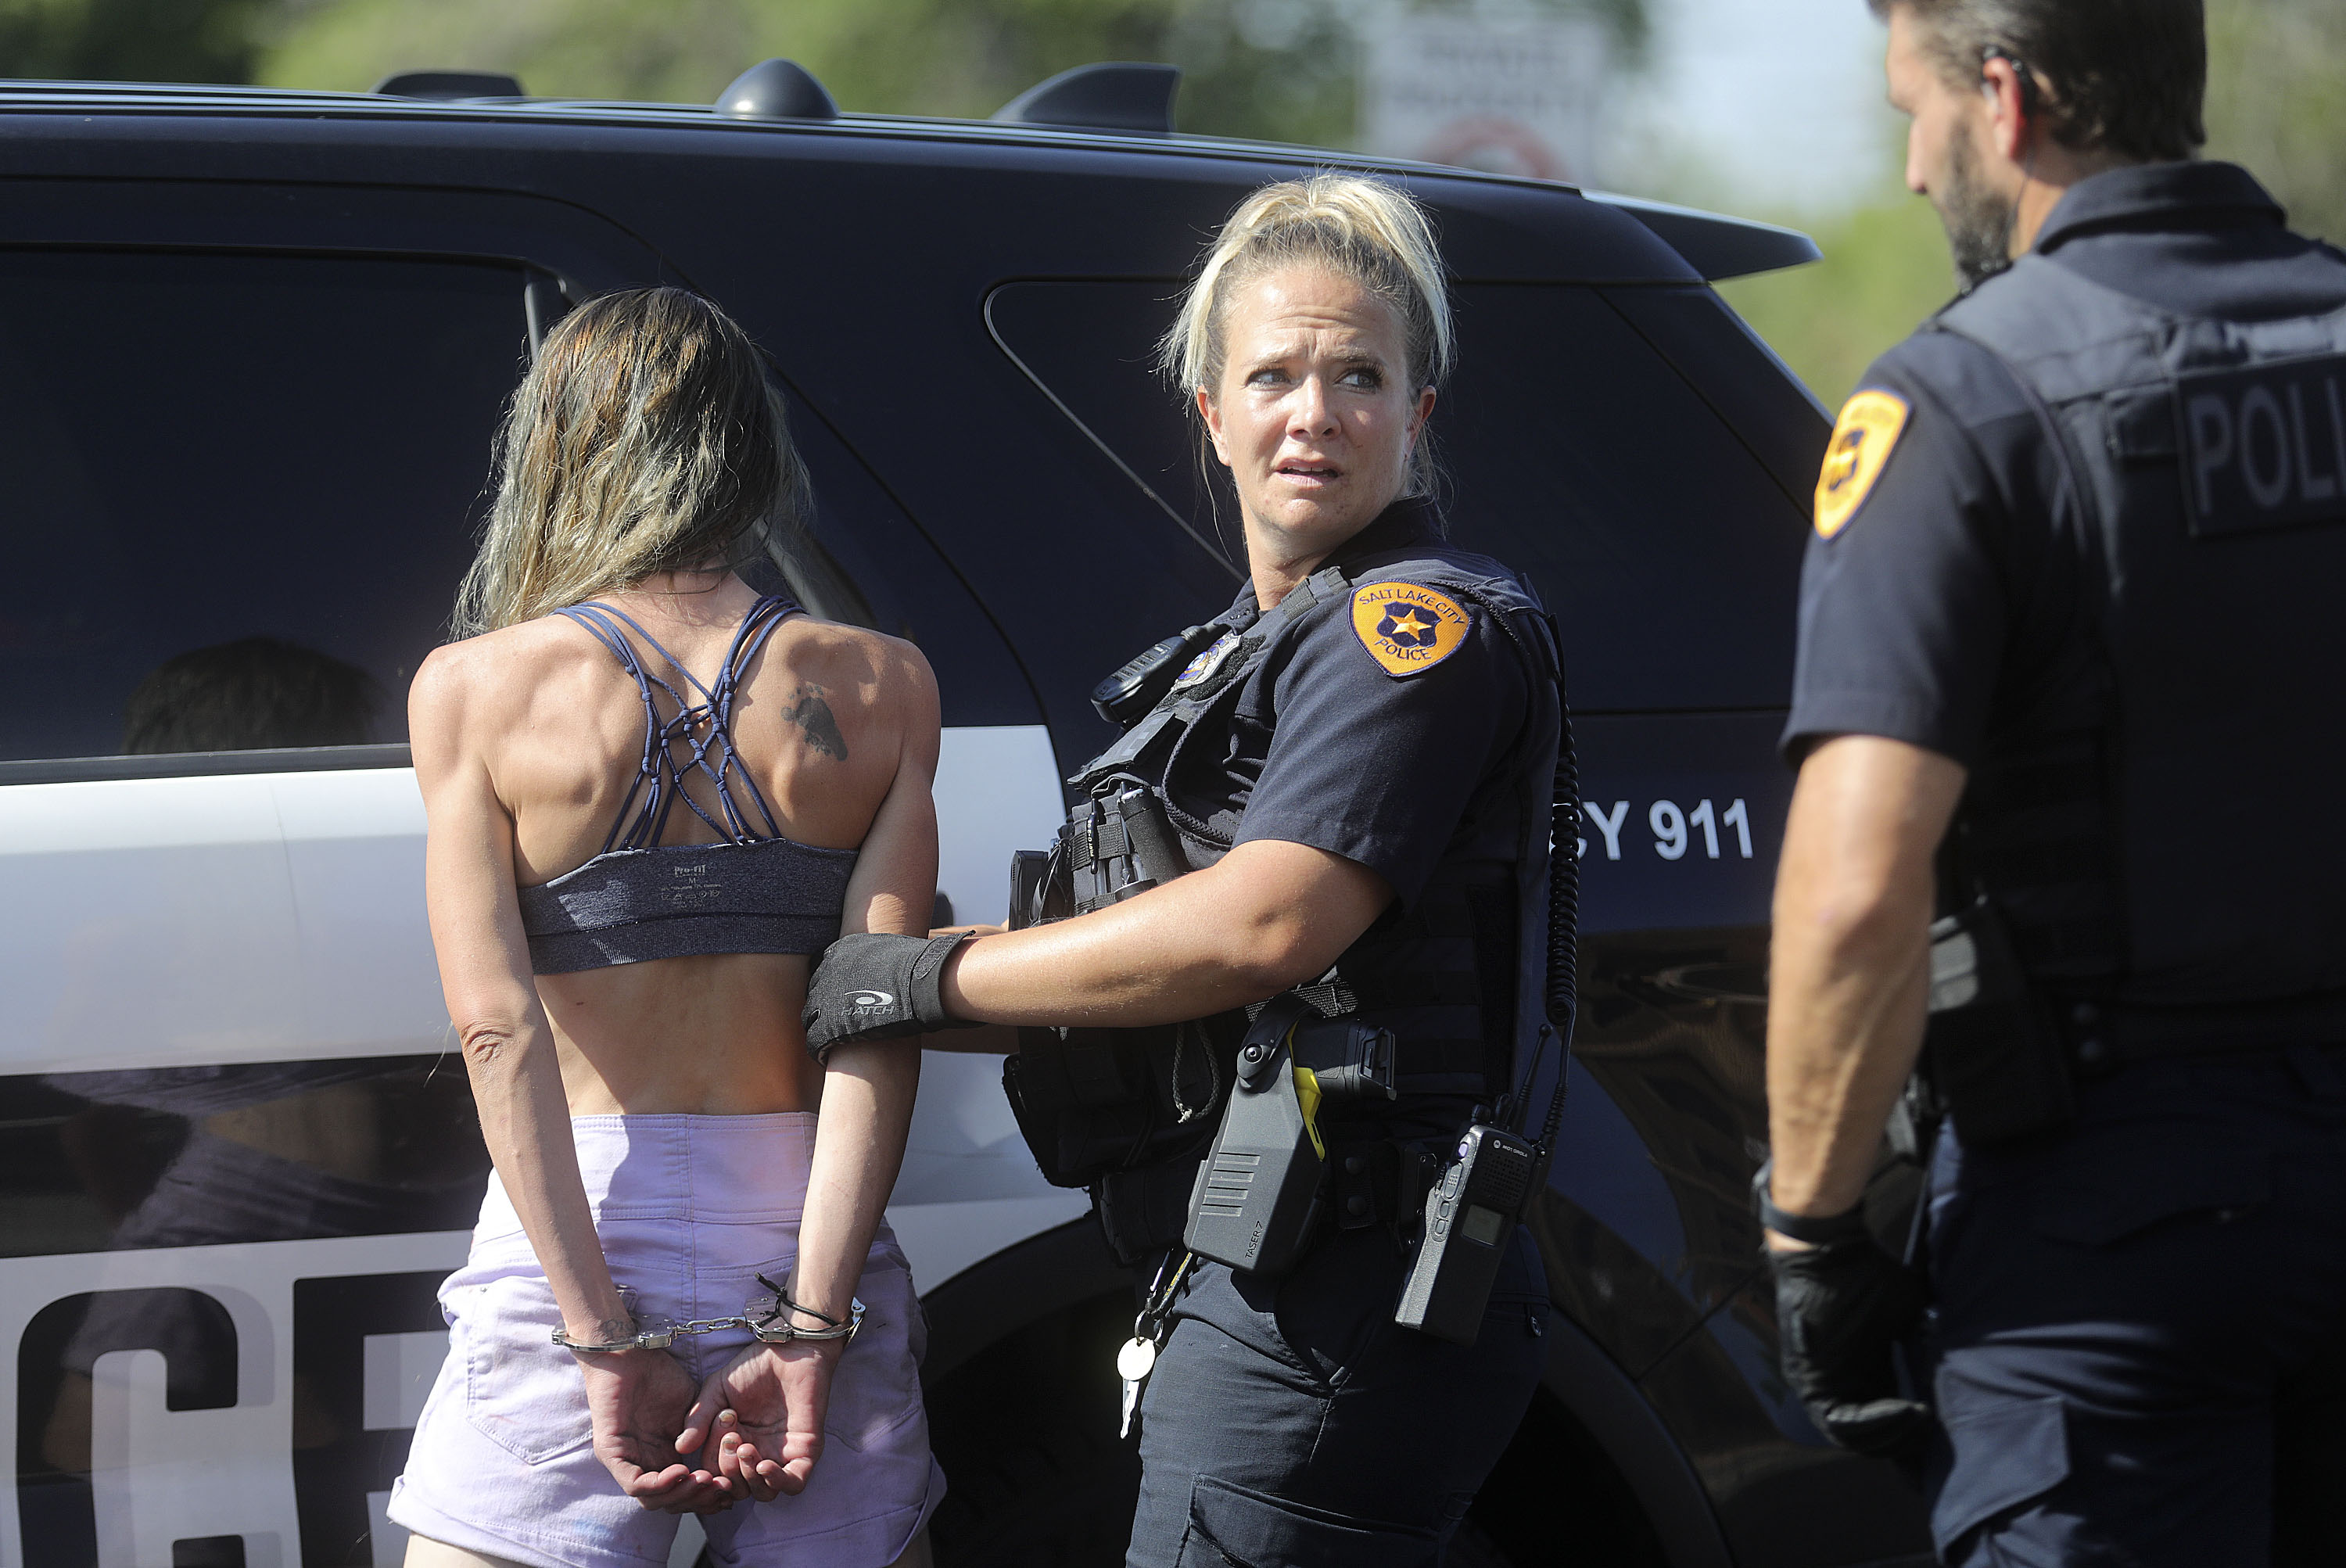 Salt Lake police officer Brandi Palmer takes a woman into custody after she was found trespassing in a stranger's apartment.